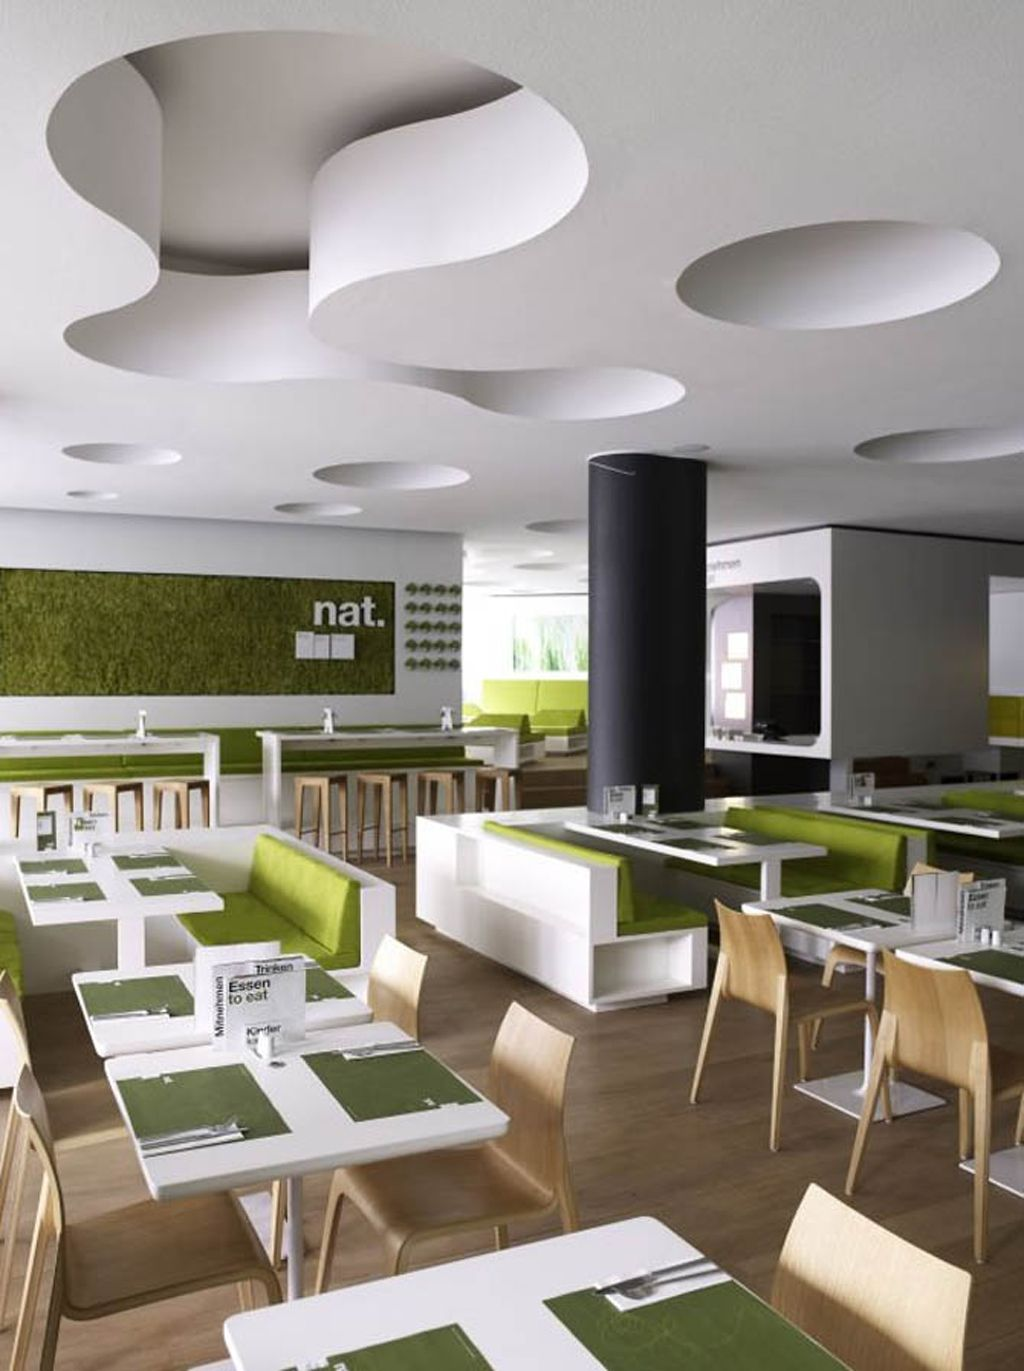 design photos and images gallery modern fast food restaurant ...